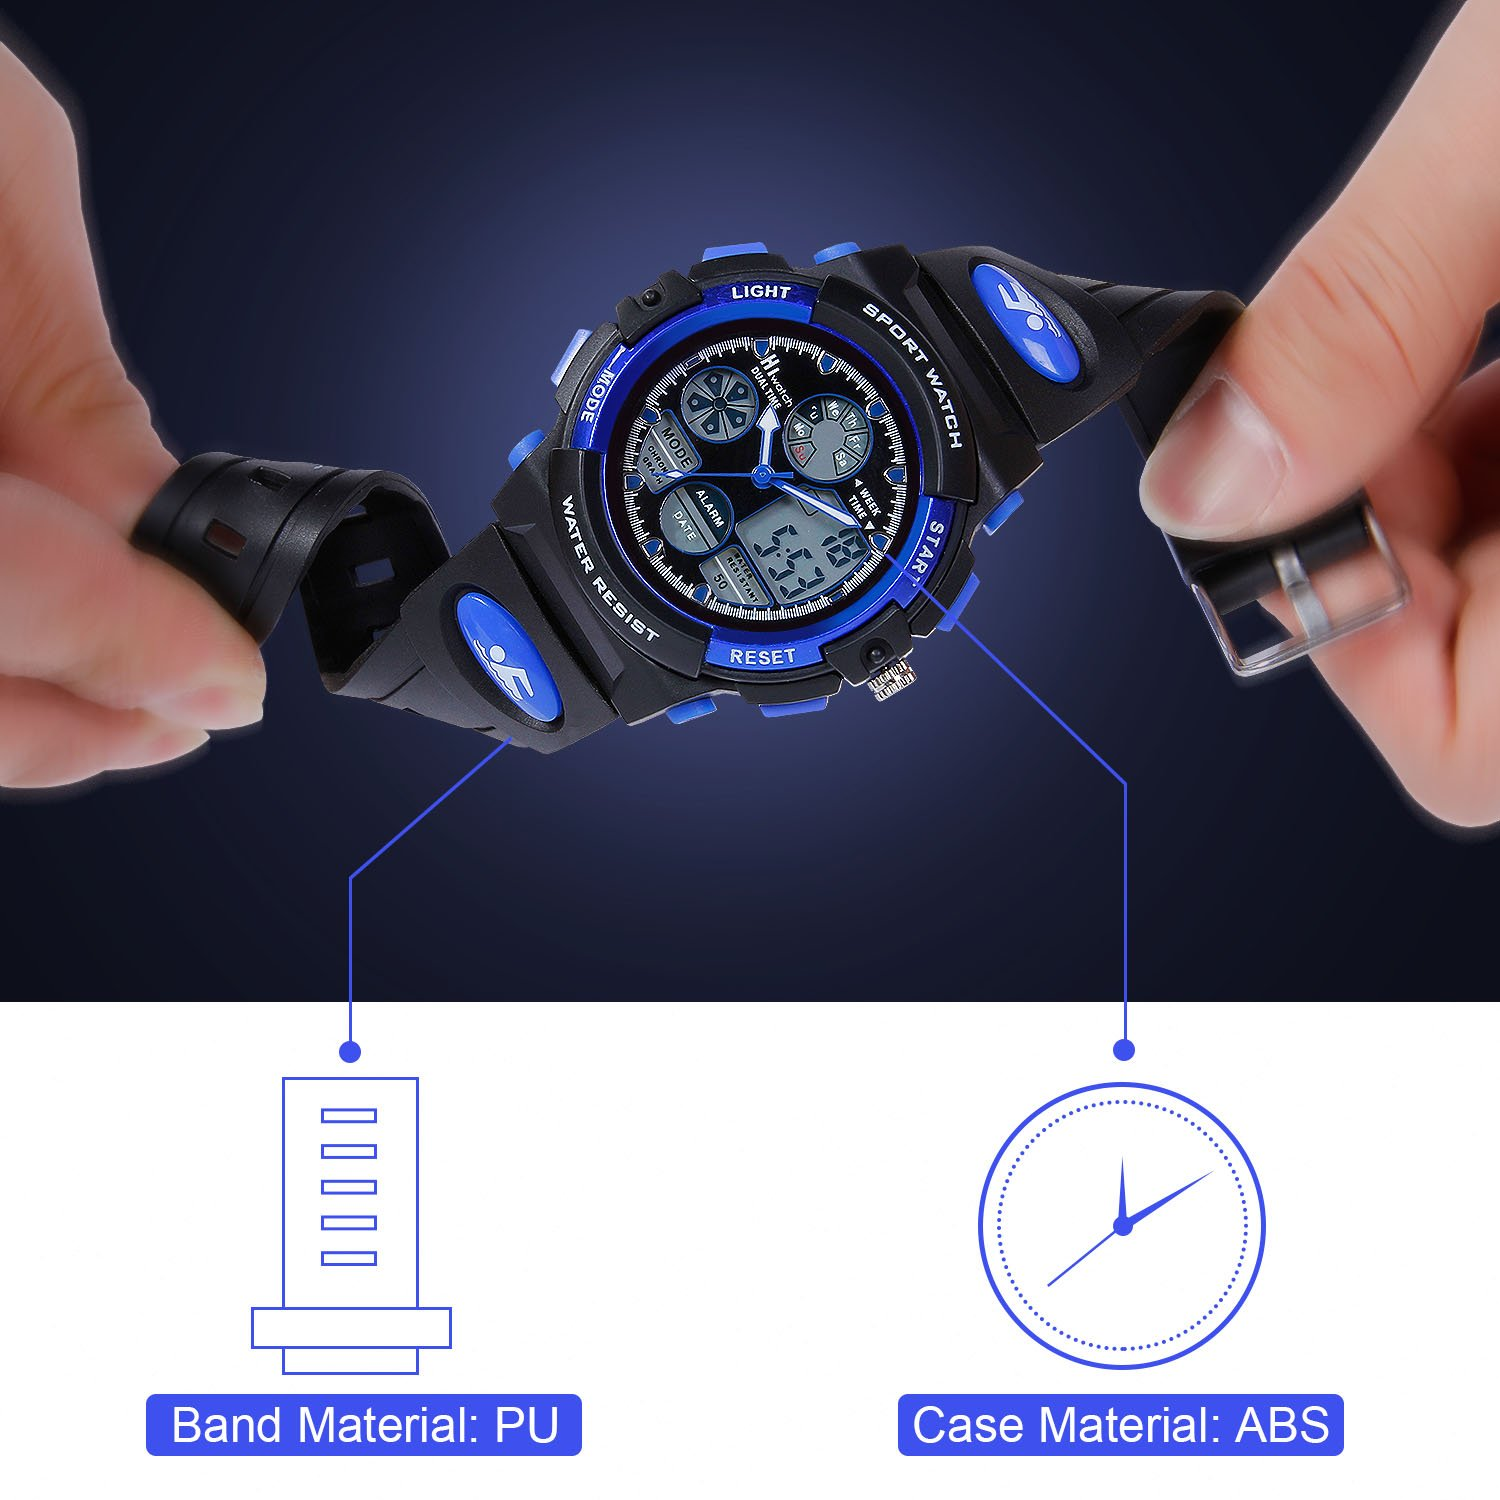 HIwatch Youth Watches Boys Girls Water-resistant Sports Digital Wrist Watch for Teenager Students,Blue by Hi Watch (Image #6)